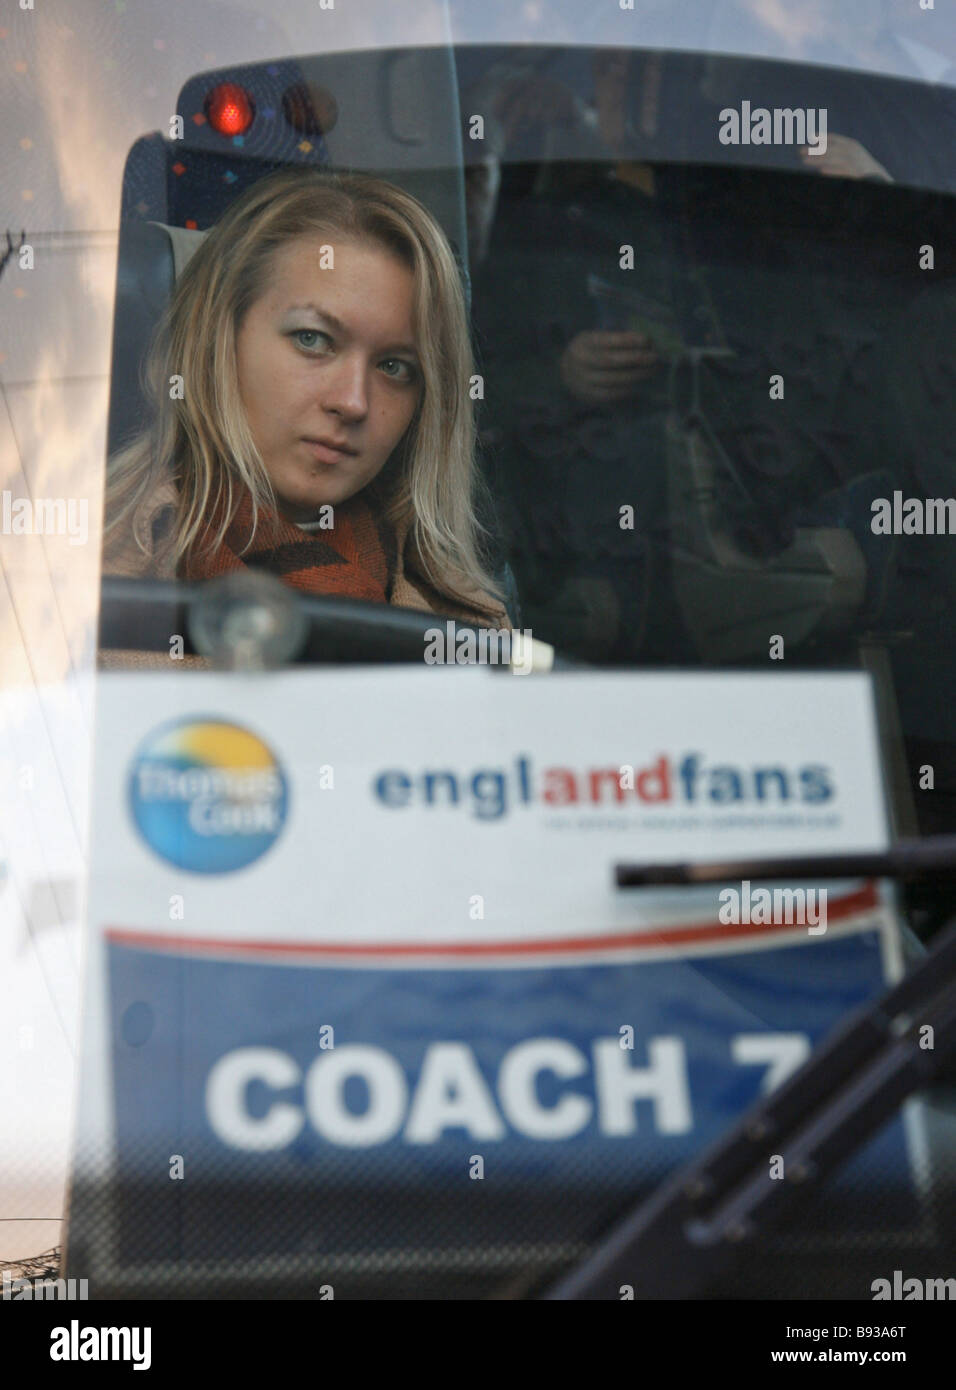 A supporter of the England national football team before the Russia England qualifying match in the European championship - Stock Image